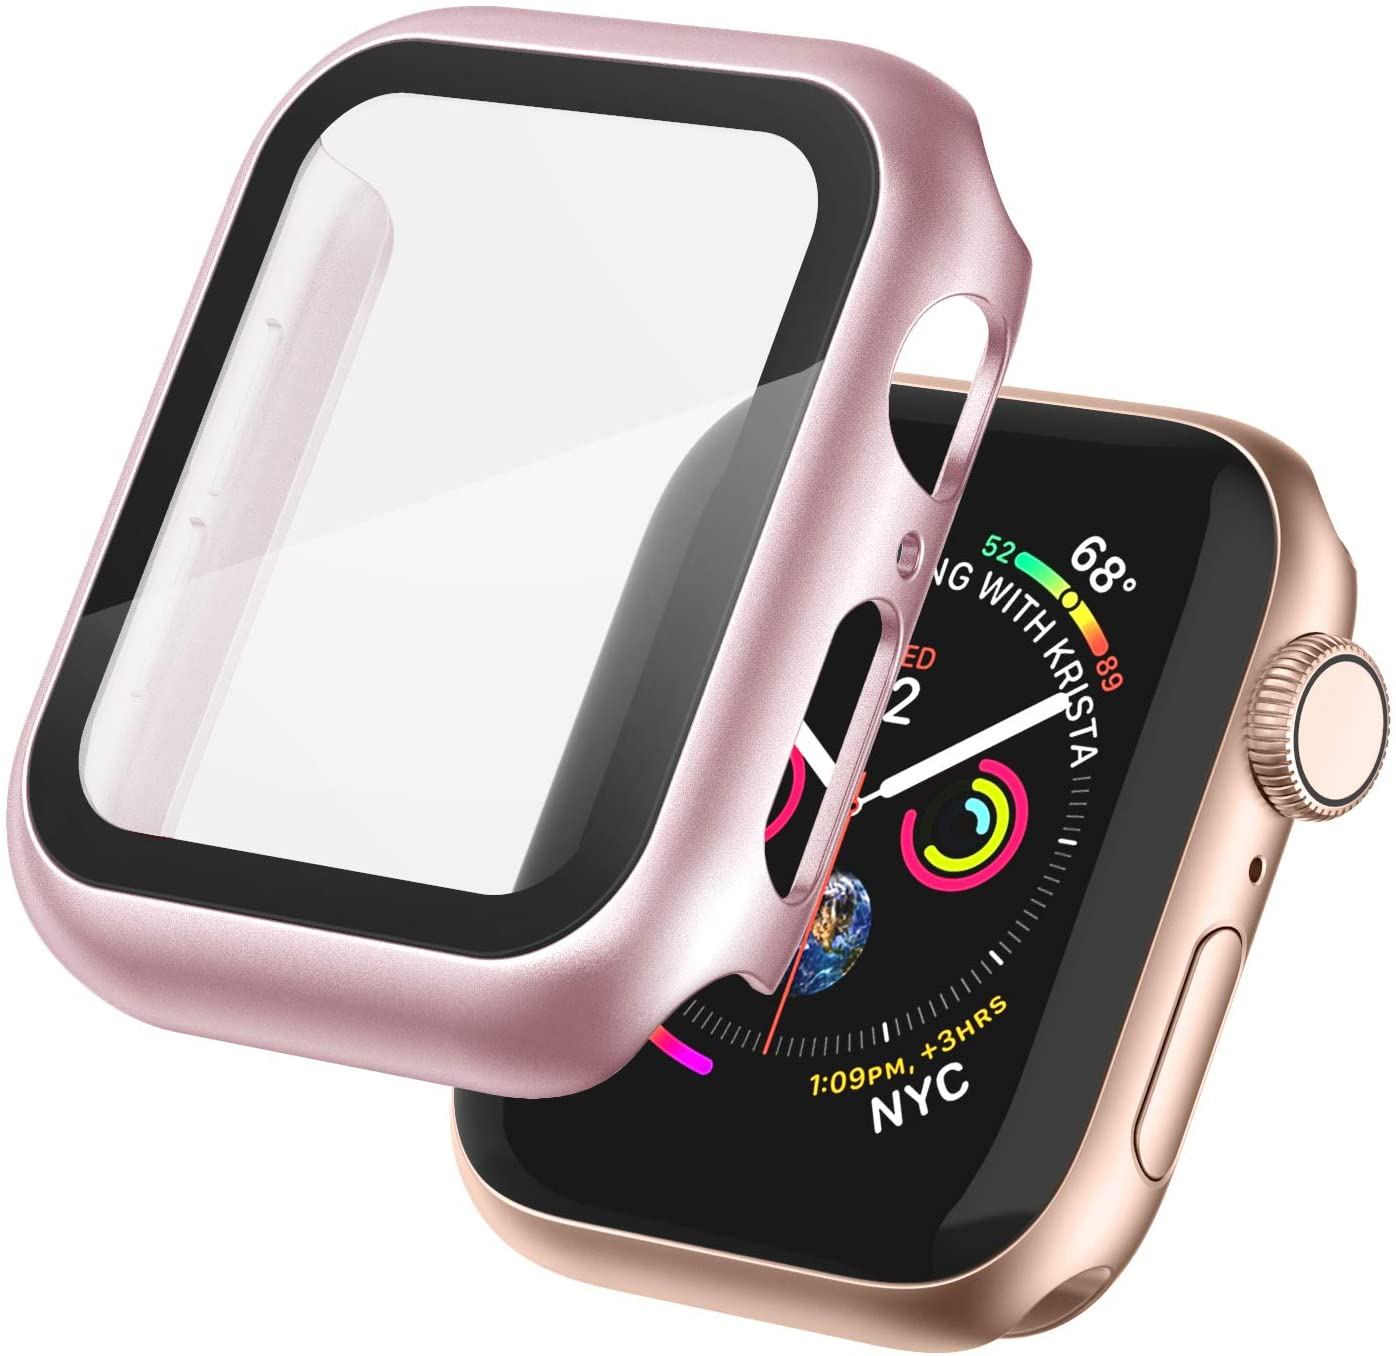 Recoppa Case Compatible with Apple Watch Bumper 40mm/44mm with Tempered Glass Screen Protector High Sensitive Touching Built-in Protective Case Cover for Apple Watch Series 5/4/3/2/1(Rose-Pink,42mm)